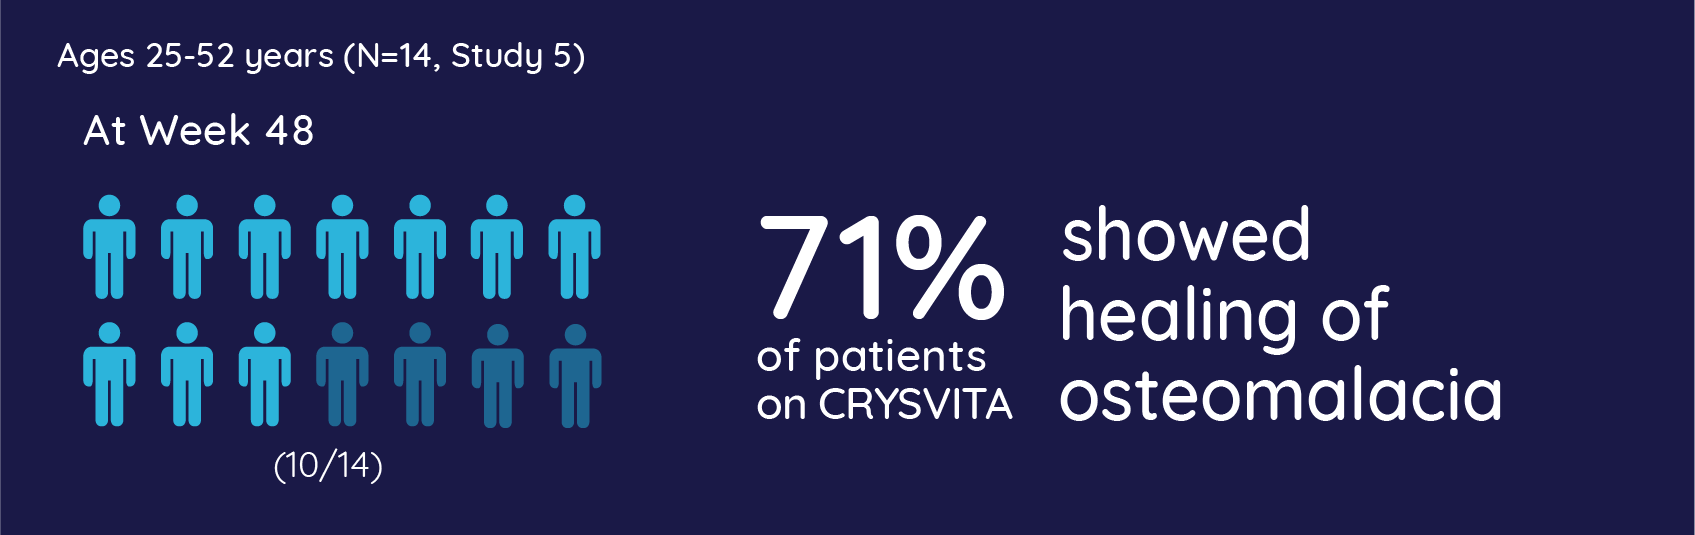 71% of patients on CRYSVITA showed healing of osteomalacia